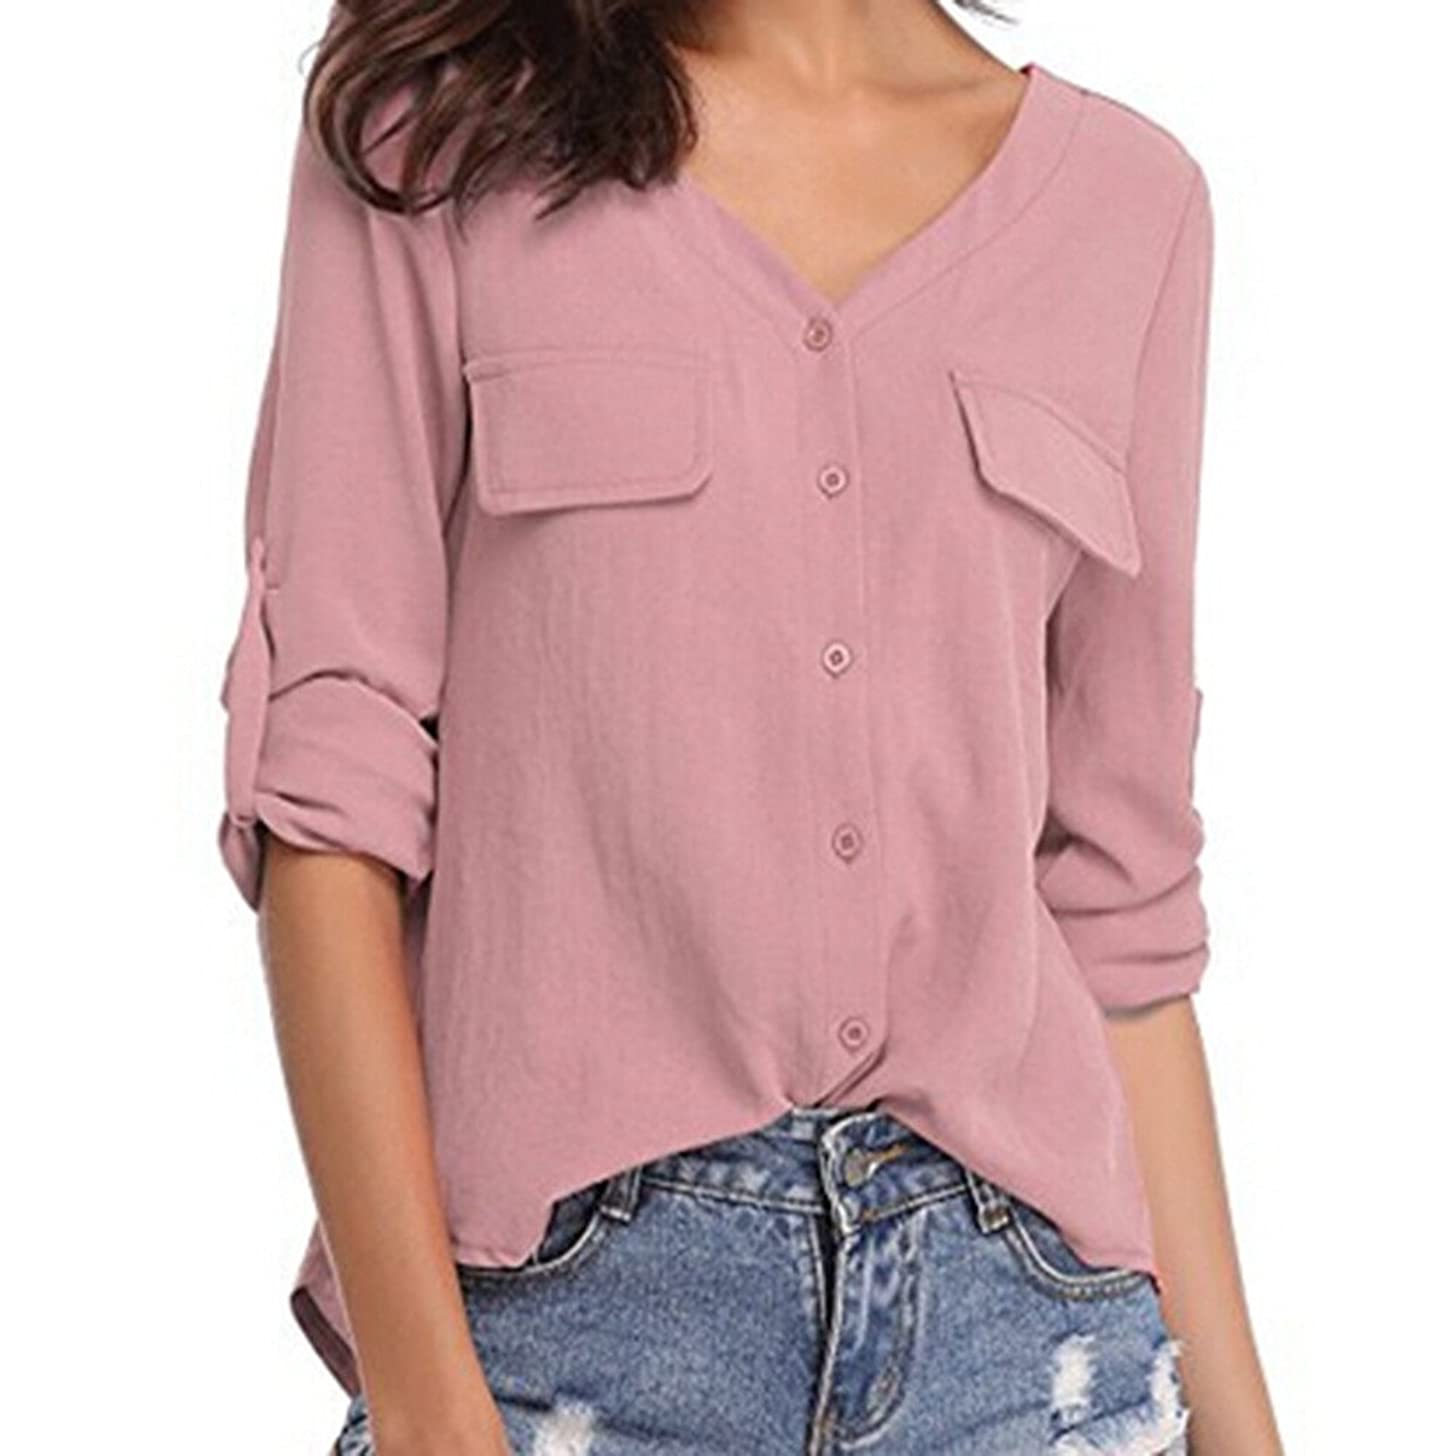 HimTak New Women's Casual Solid Color Long-Sleeved Casual Bottoming t-Shirt Button Chiffon v-Neck Wild Repair Shirt